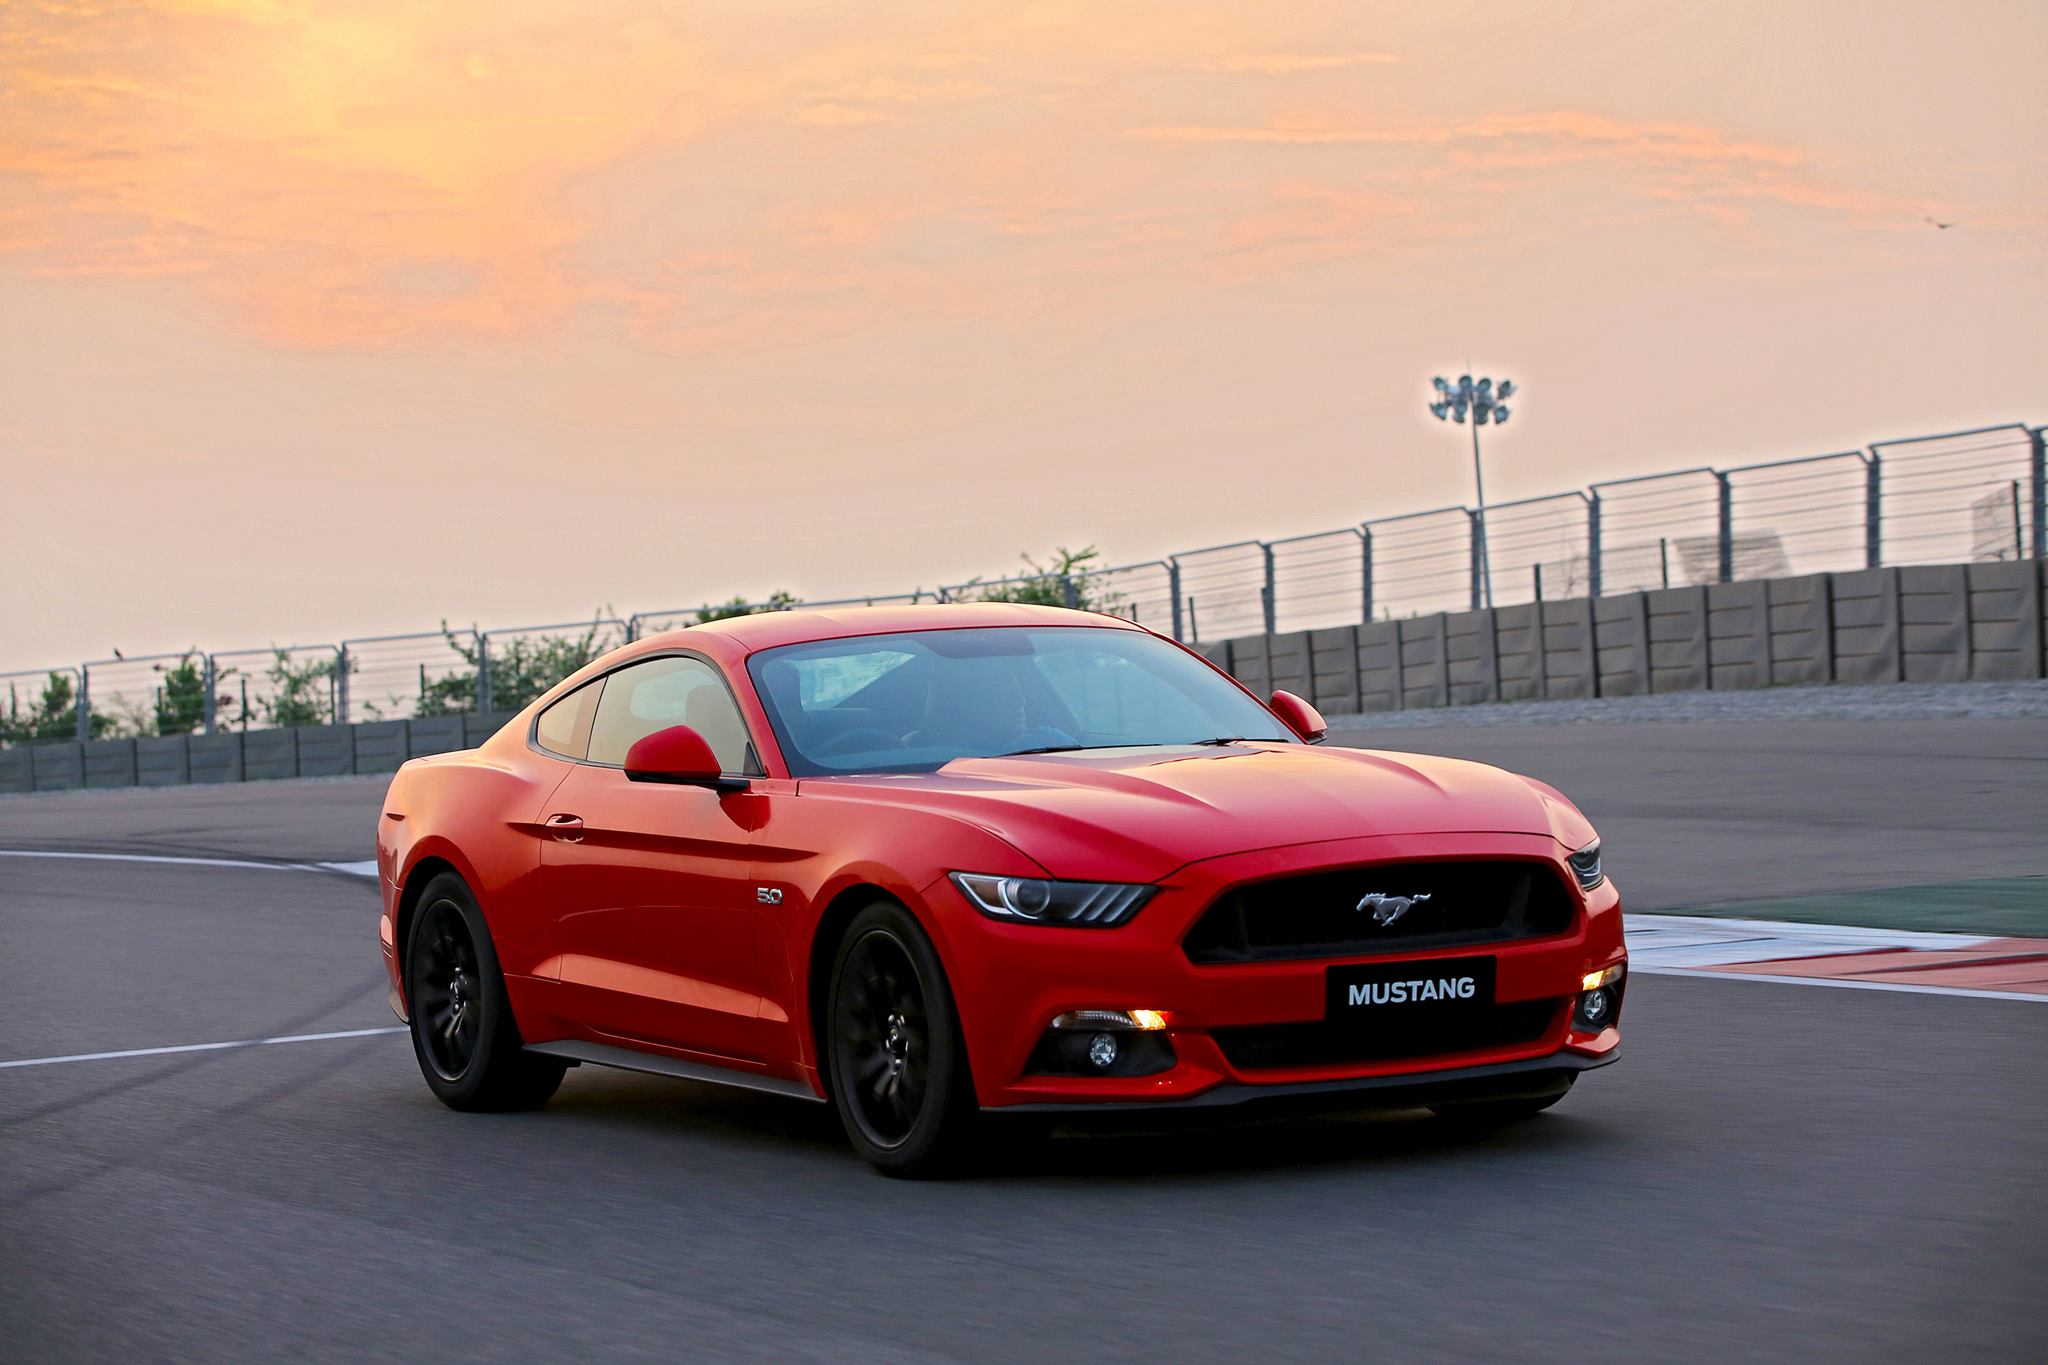 ford mustang gt makes its official debut in india 5 0l v8 401hp rs 65 lakh. Black Bedroom Furniture Sets. Home Design Ideas